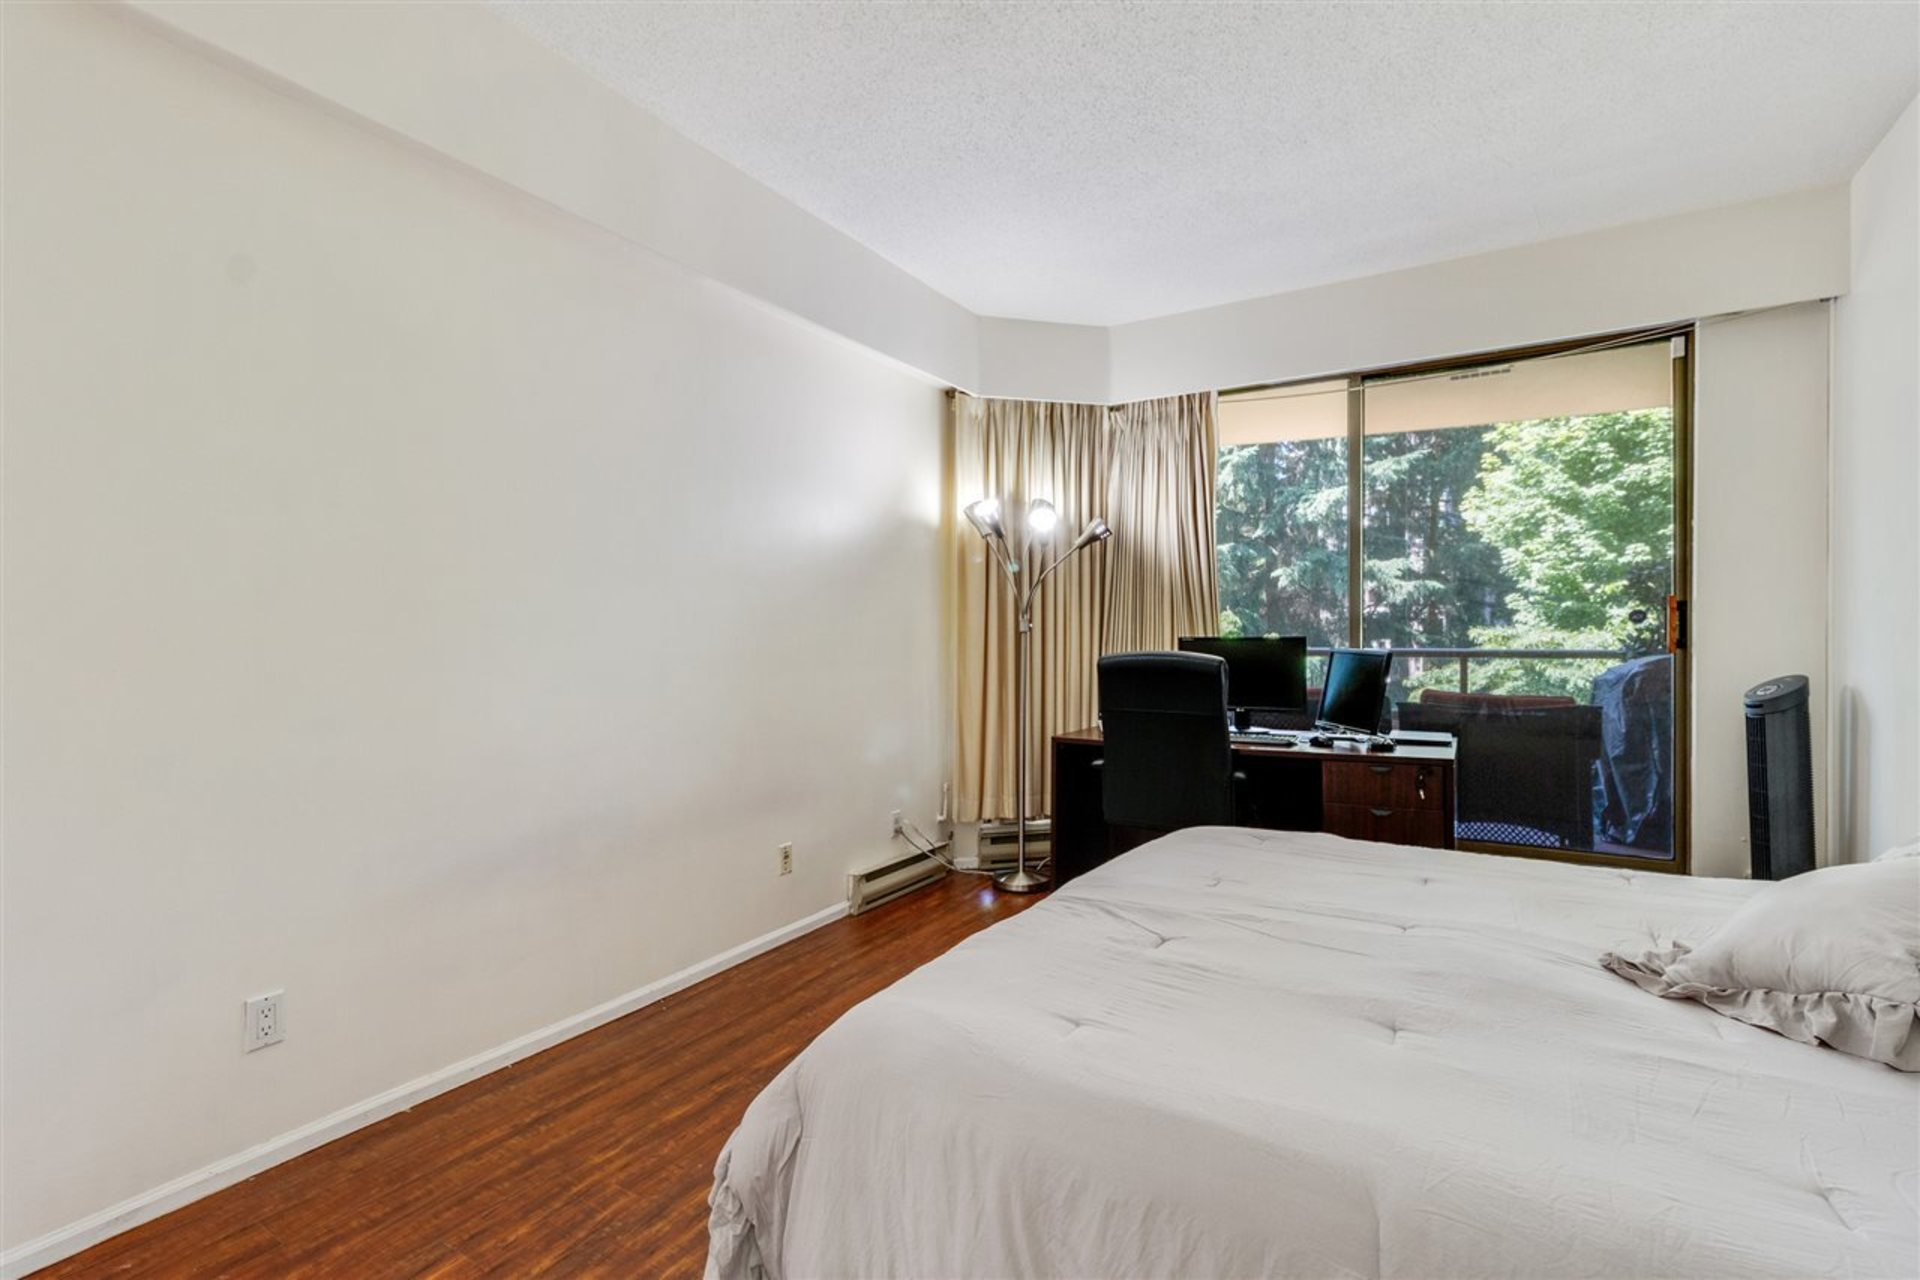 5885-olive-avenue-metrotown-burnaby-south-13 at 201 - 5885 Olive Avenue, Metrotown, Burnaby South